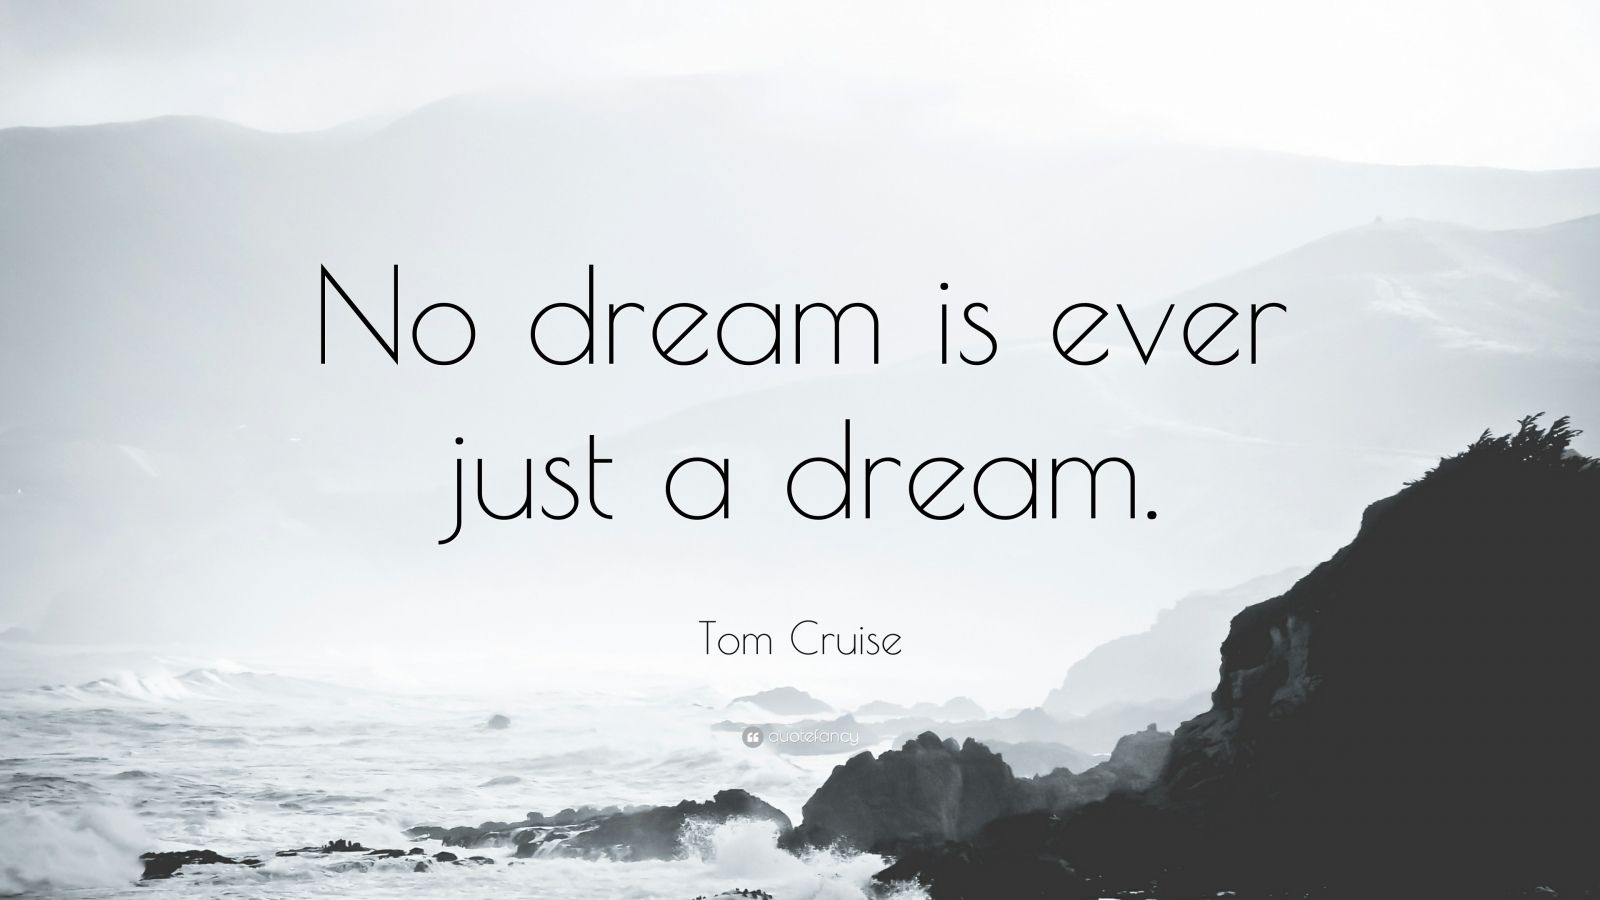 Tom Cruise Quotes 90 Wallpapers: Vision Quotes (40 Wallpapers)